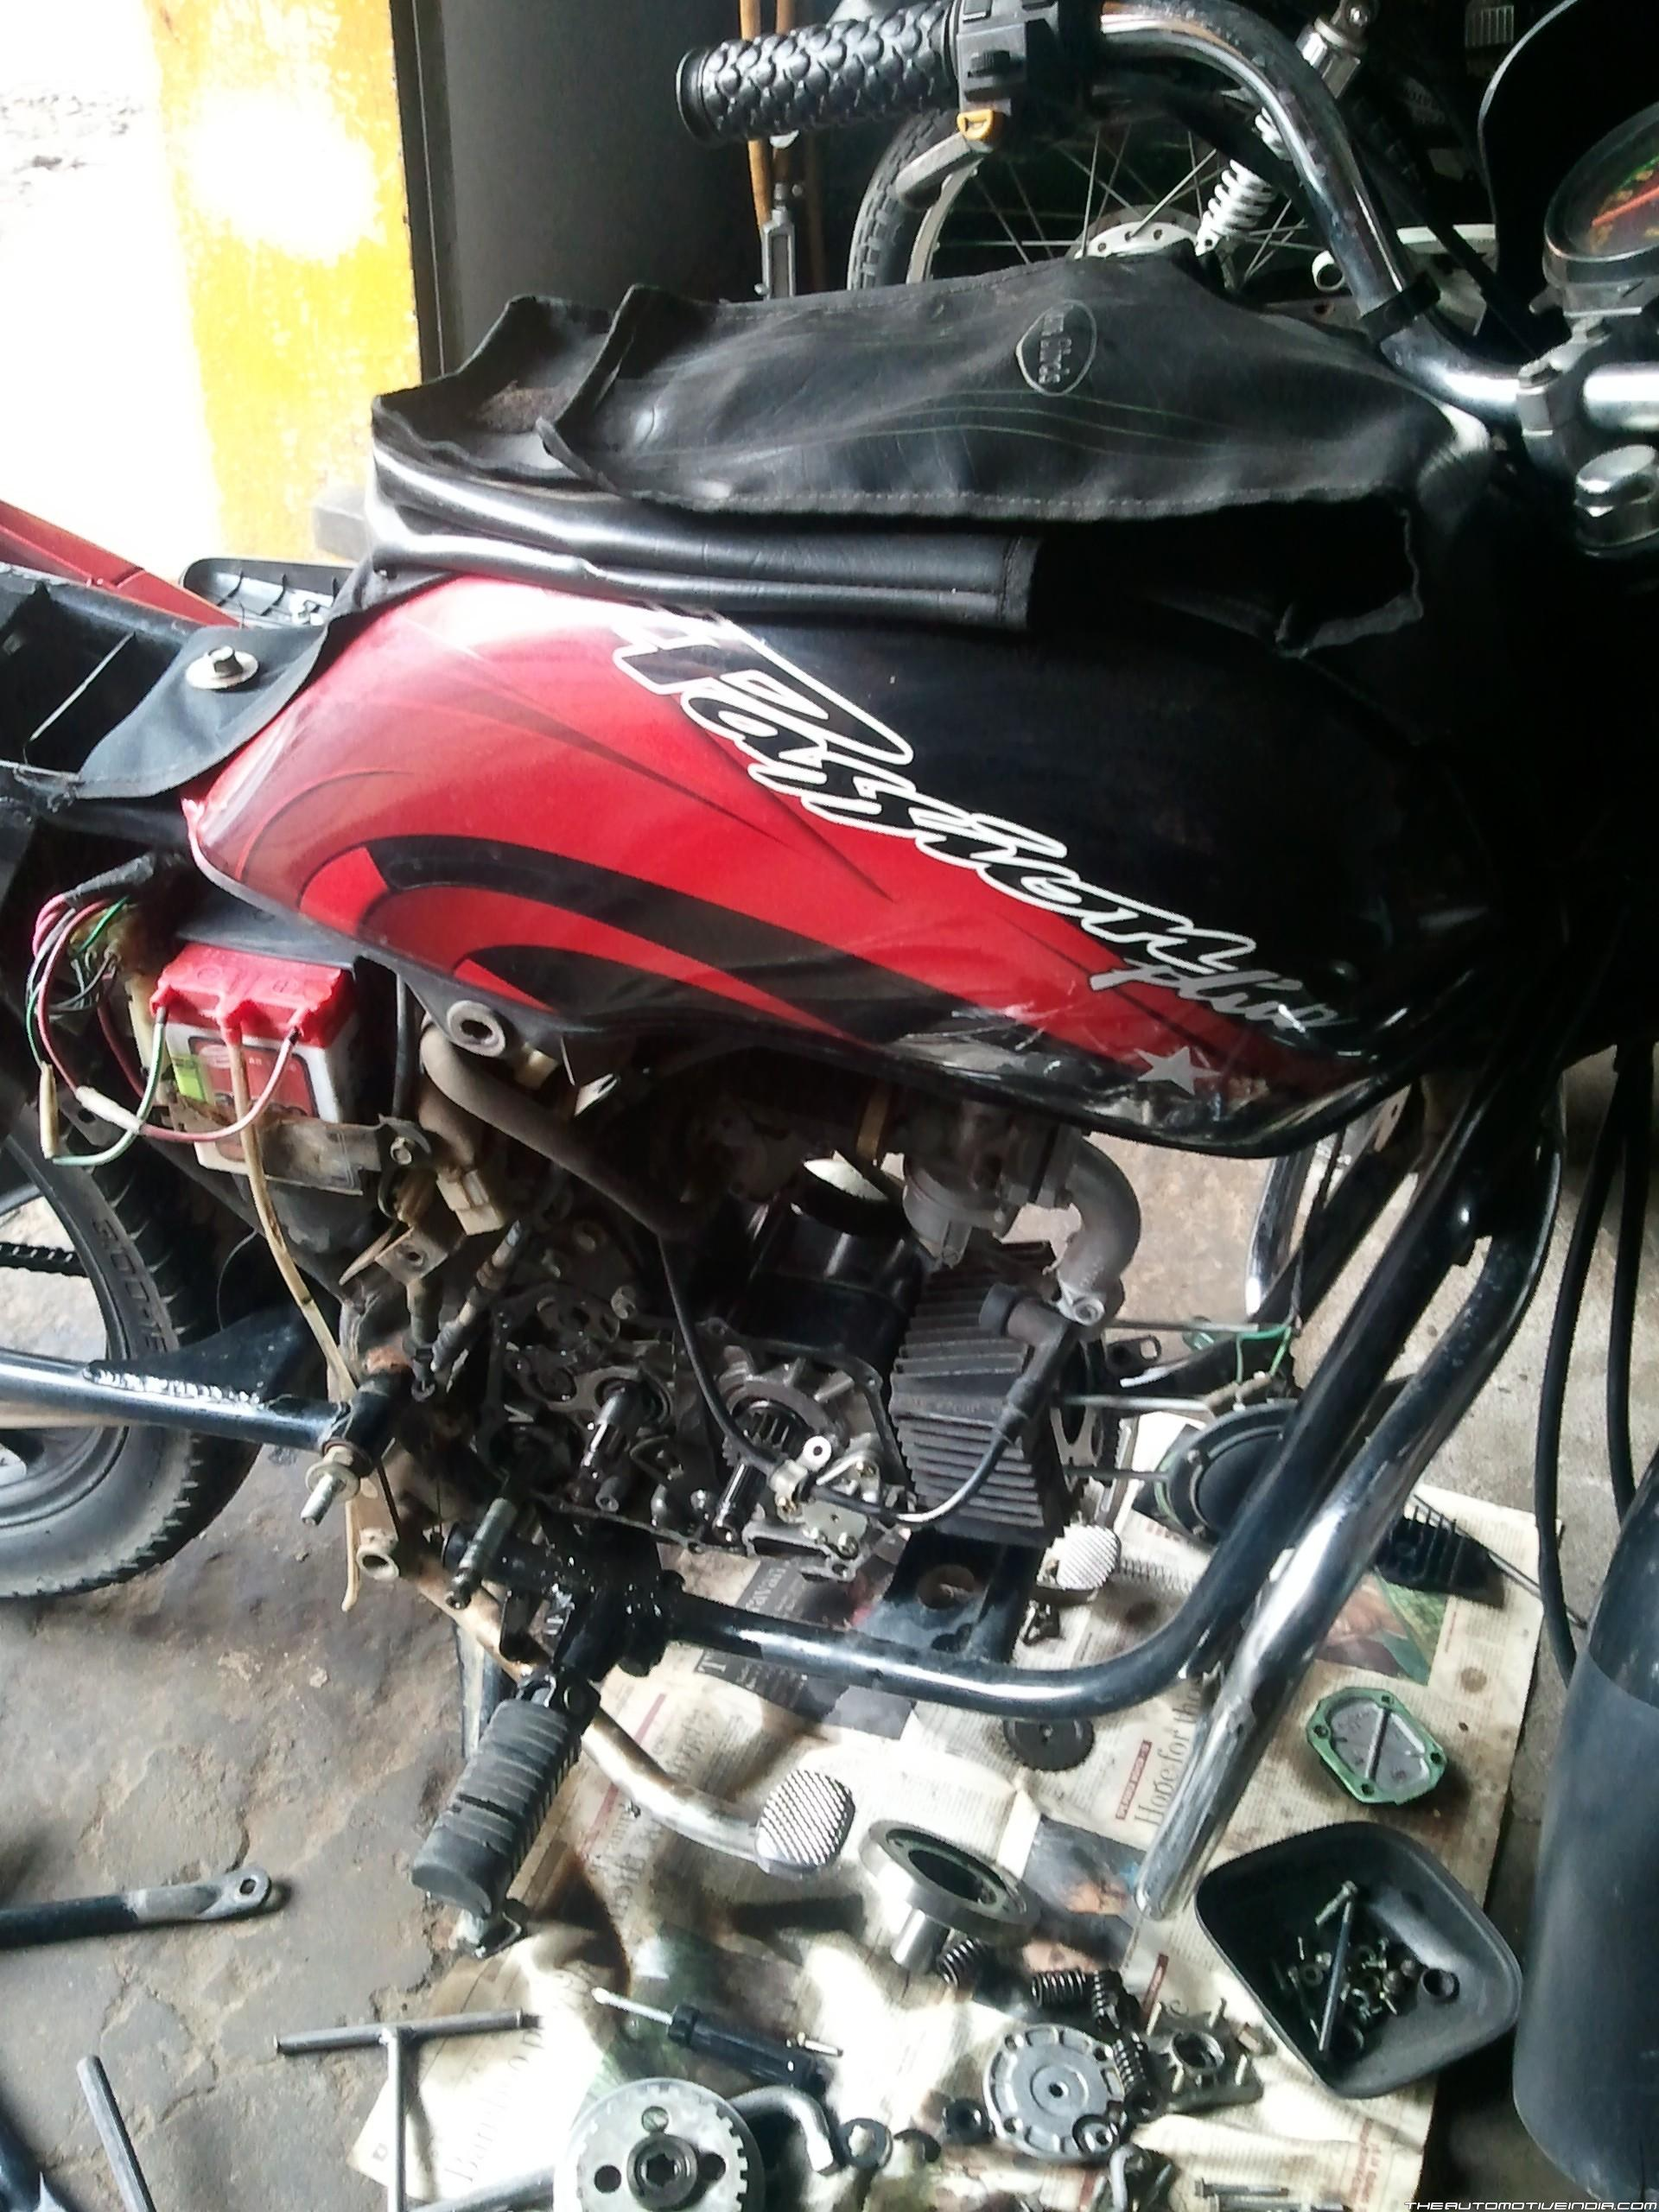 Hero Honda Passion Plus 2007 images #156060